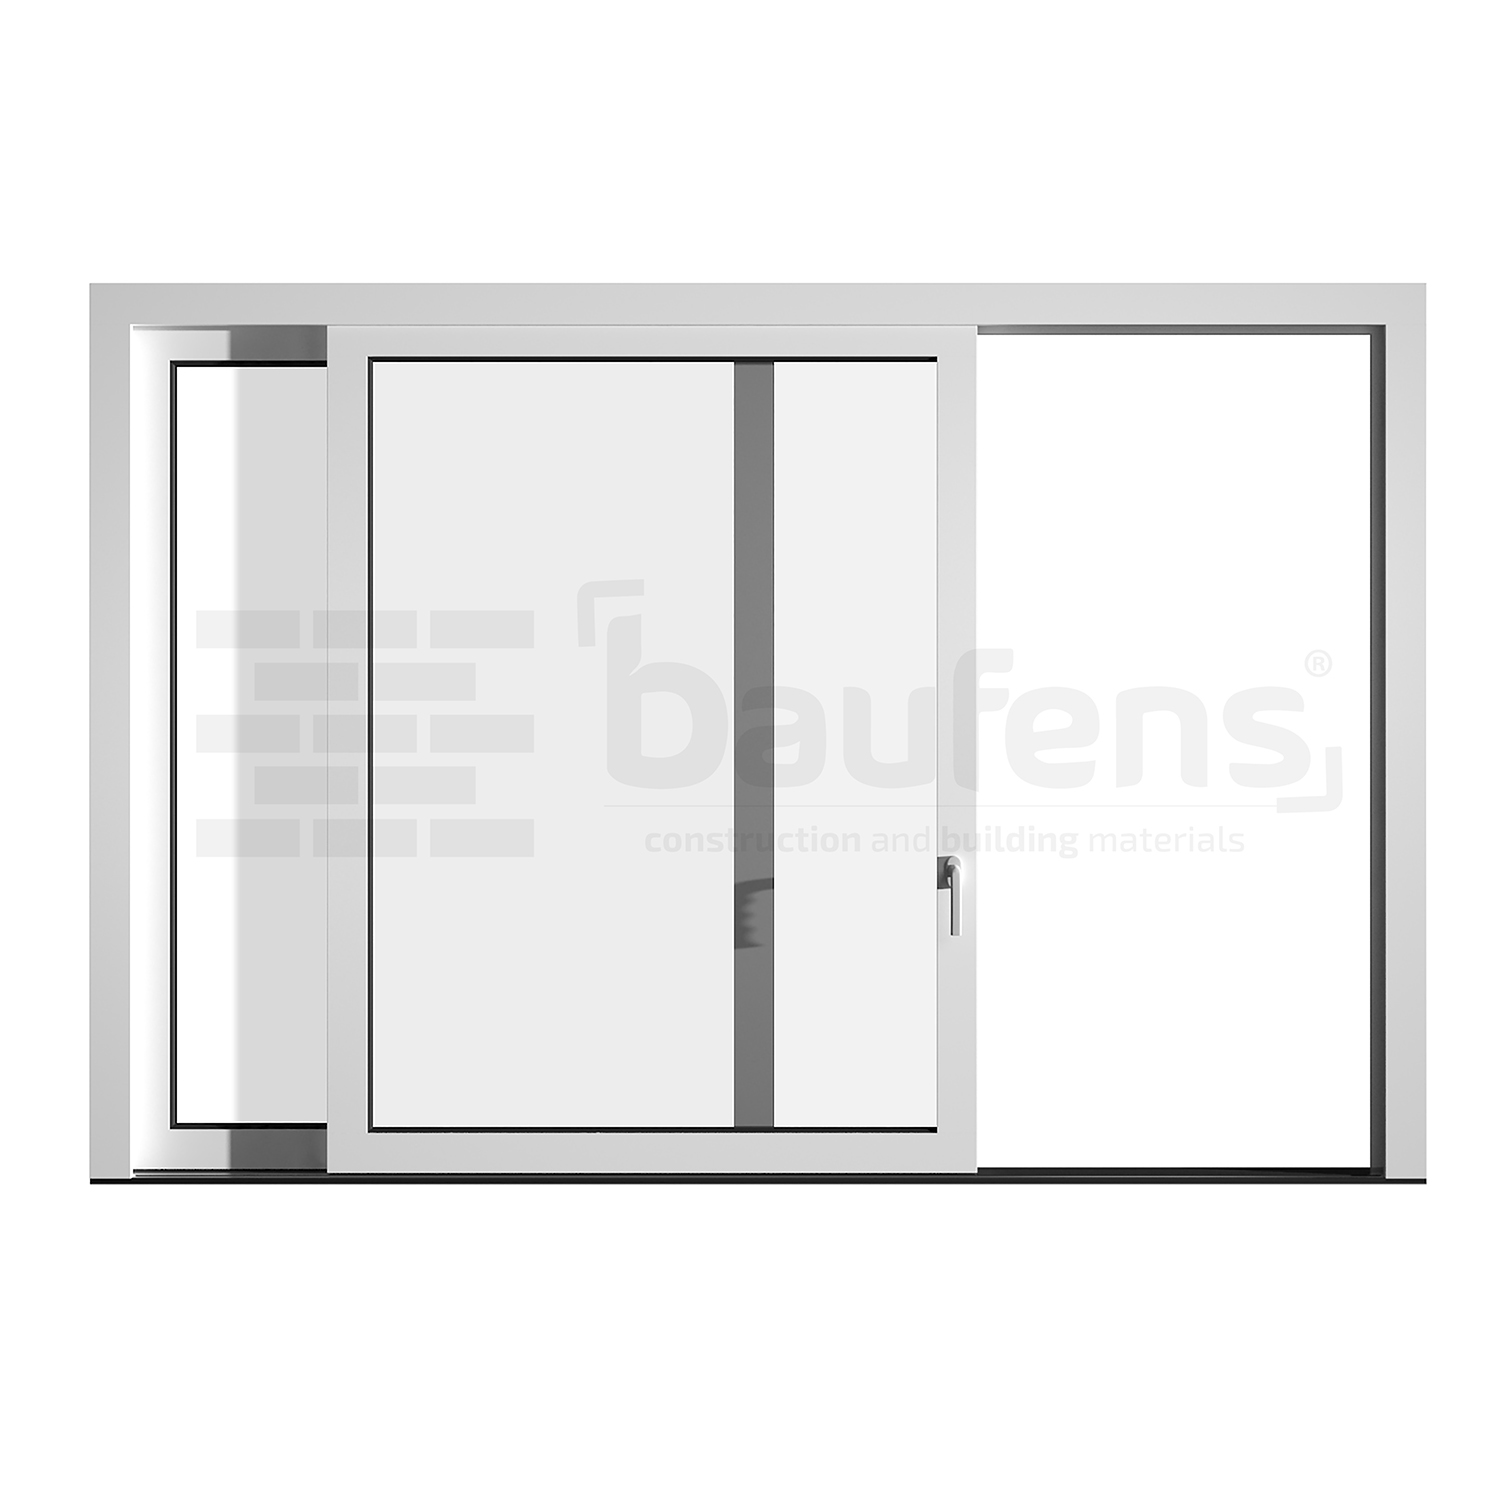 sliding-window-upvc-size-100-x7x110-cm.